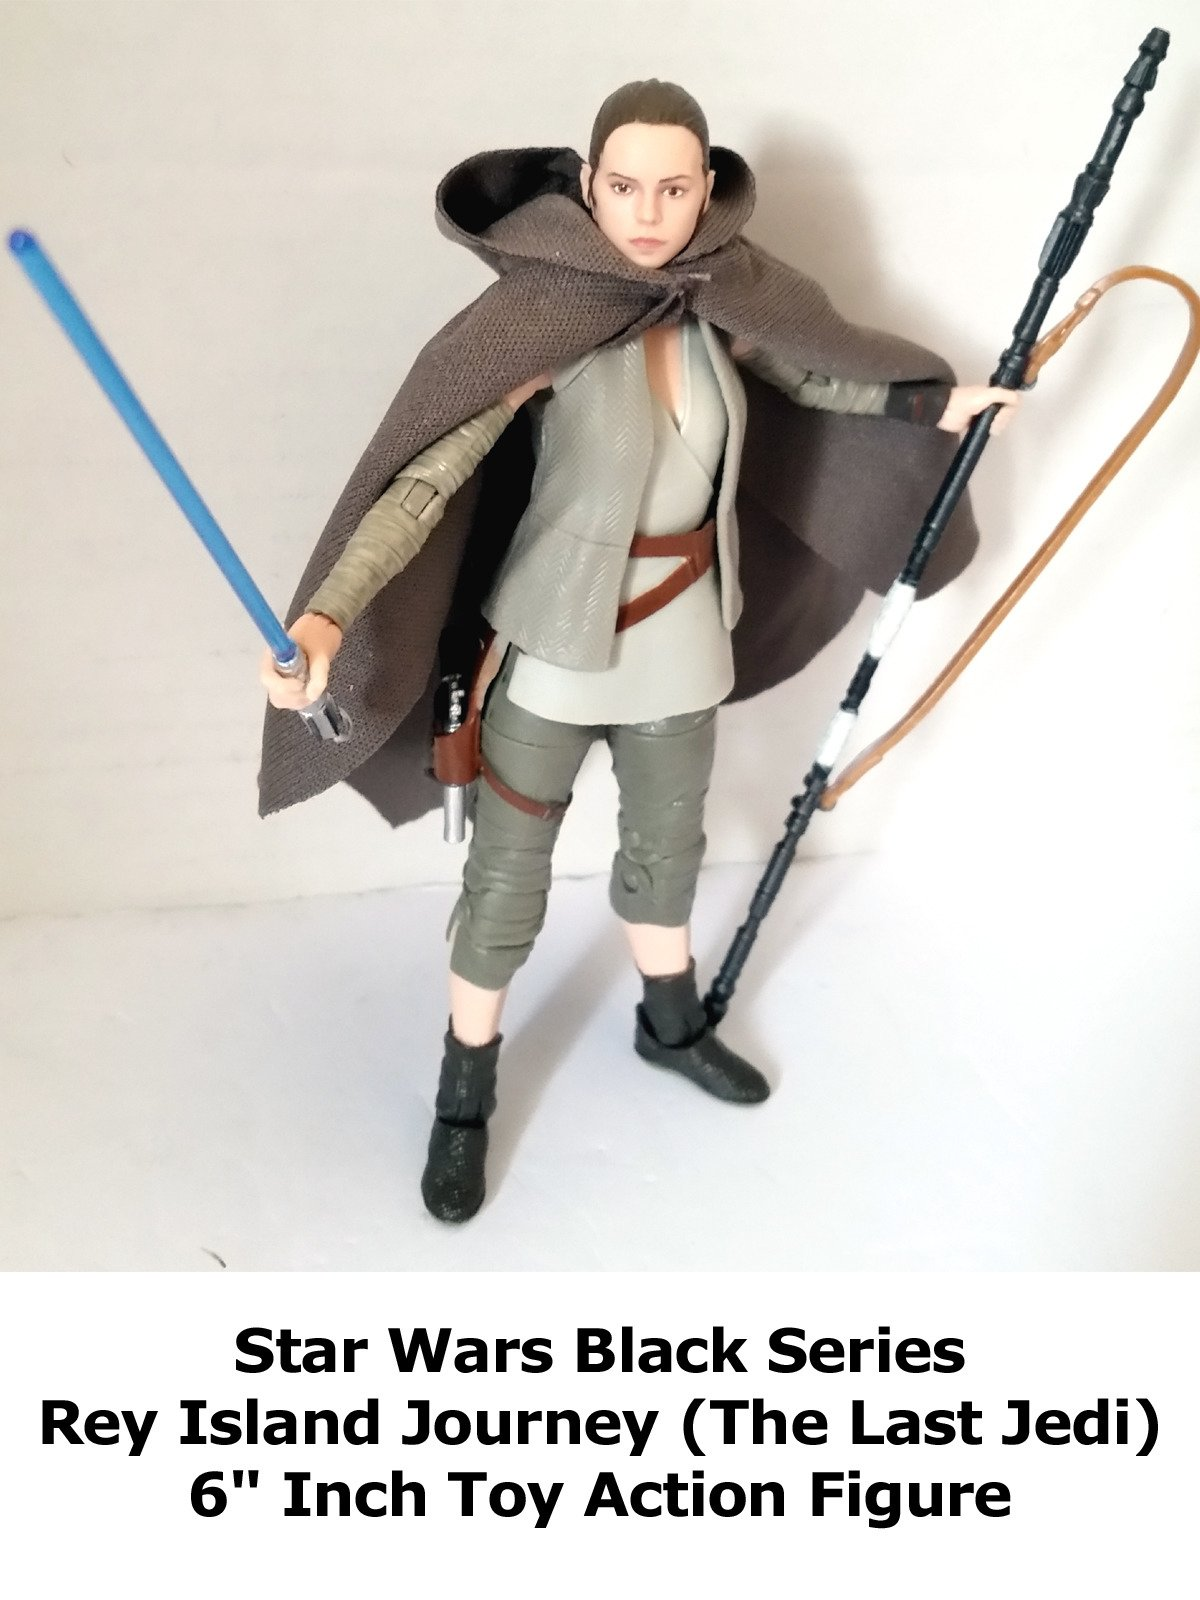 "Review: Star Wars Black Series Rey Island Journey (The Last Jedi) 6"" Inch Toy Action Figure"